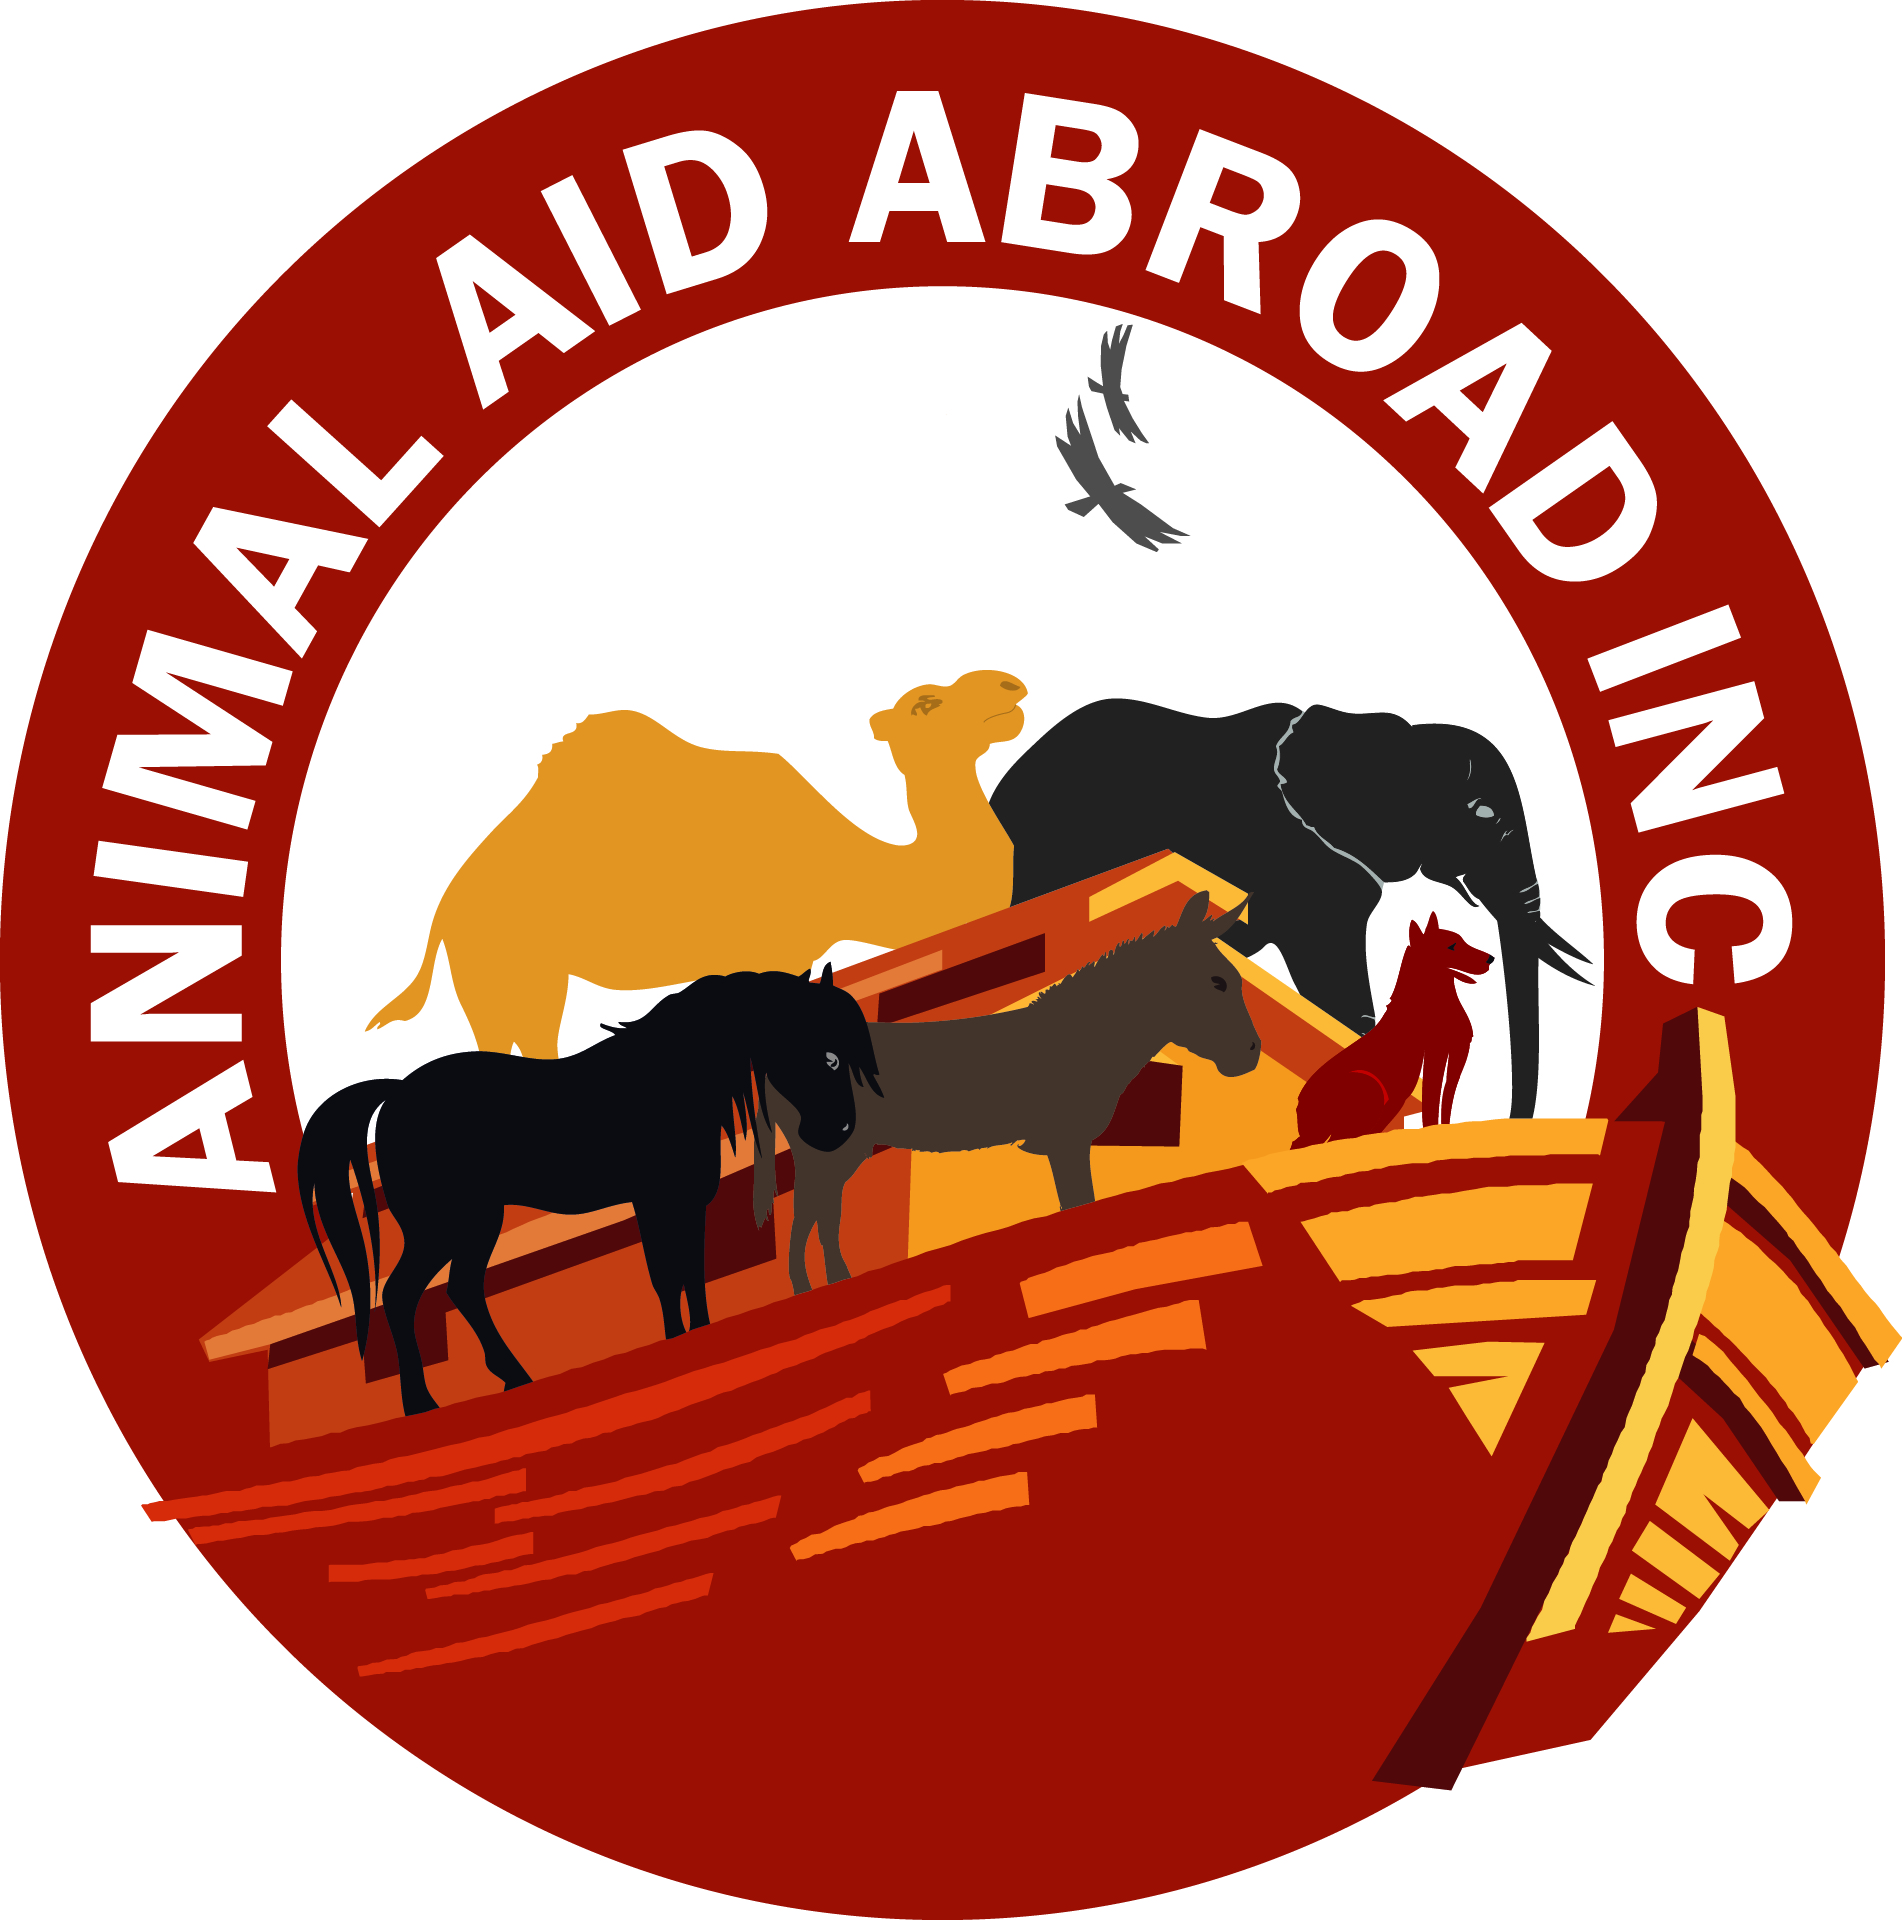 Animal aid Abroad support